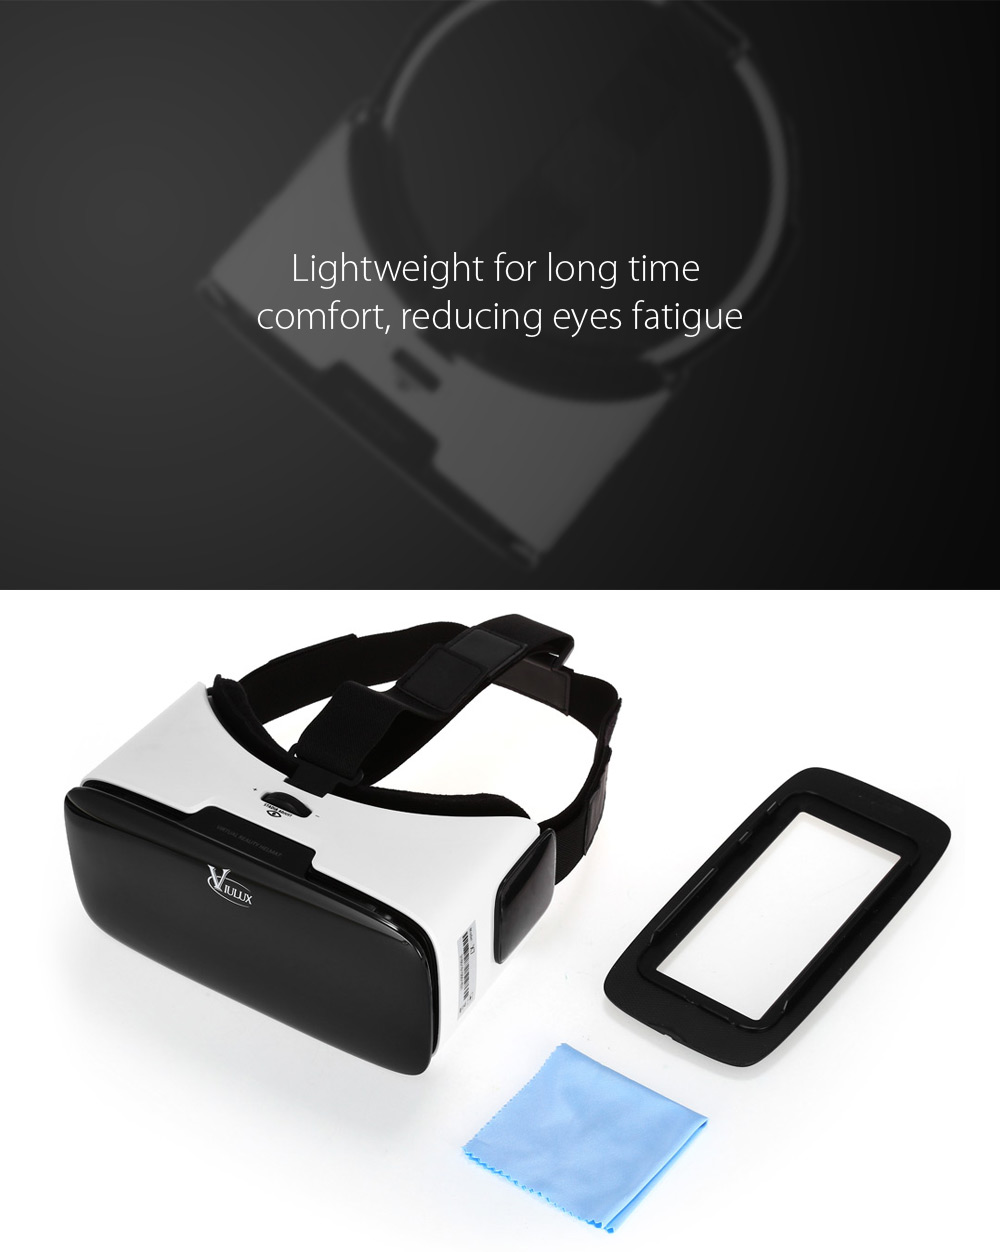 Viulux X7 Virtual Reality 3D Glasses for 3.5 - 6.0 inch Phones